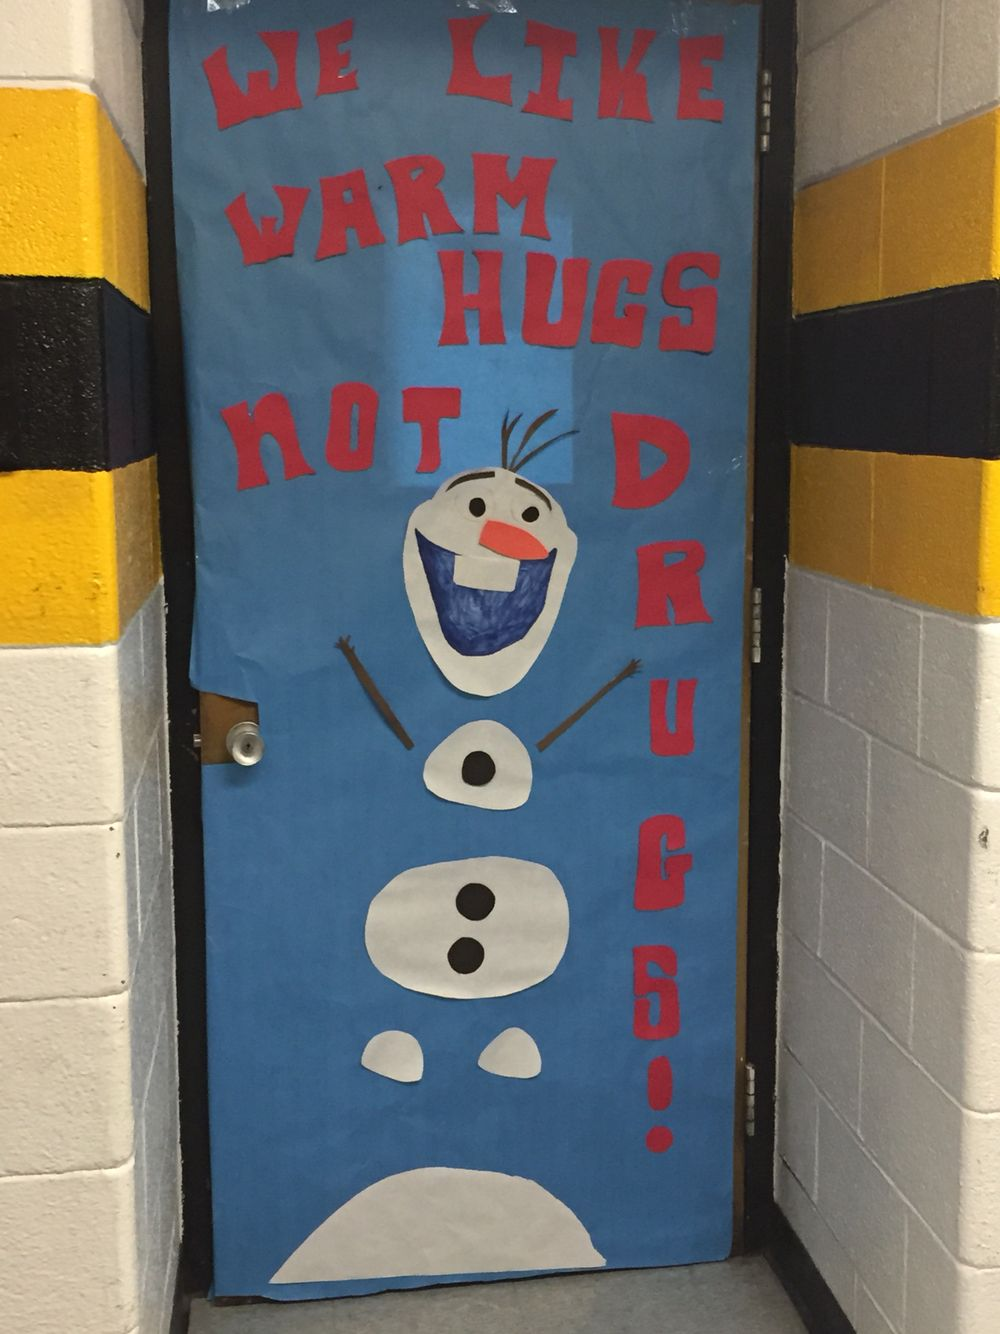 I Like Warm Hugs Not Drugs Cute Olaf Door We Did For Red Ribbon